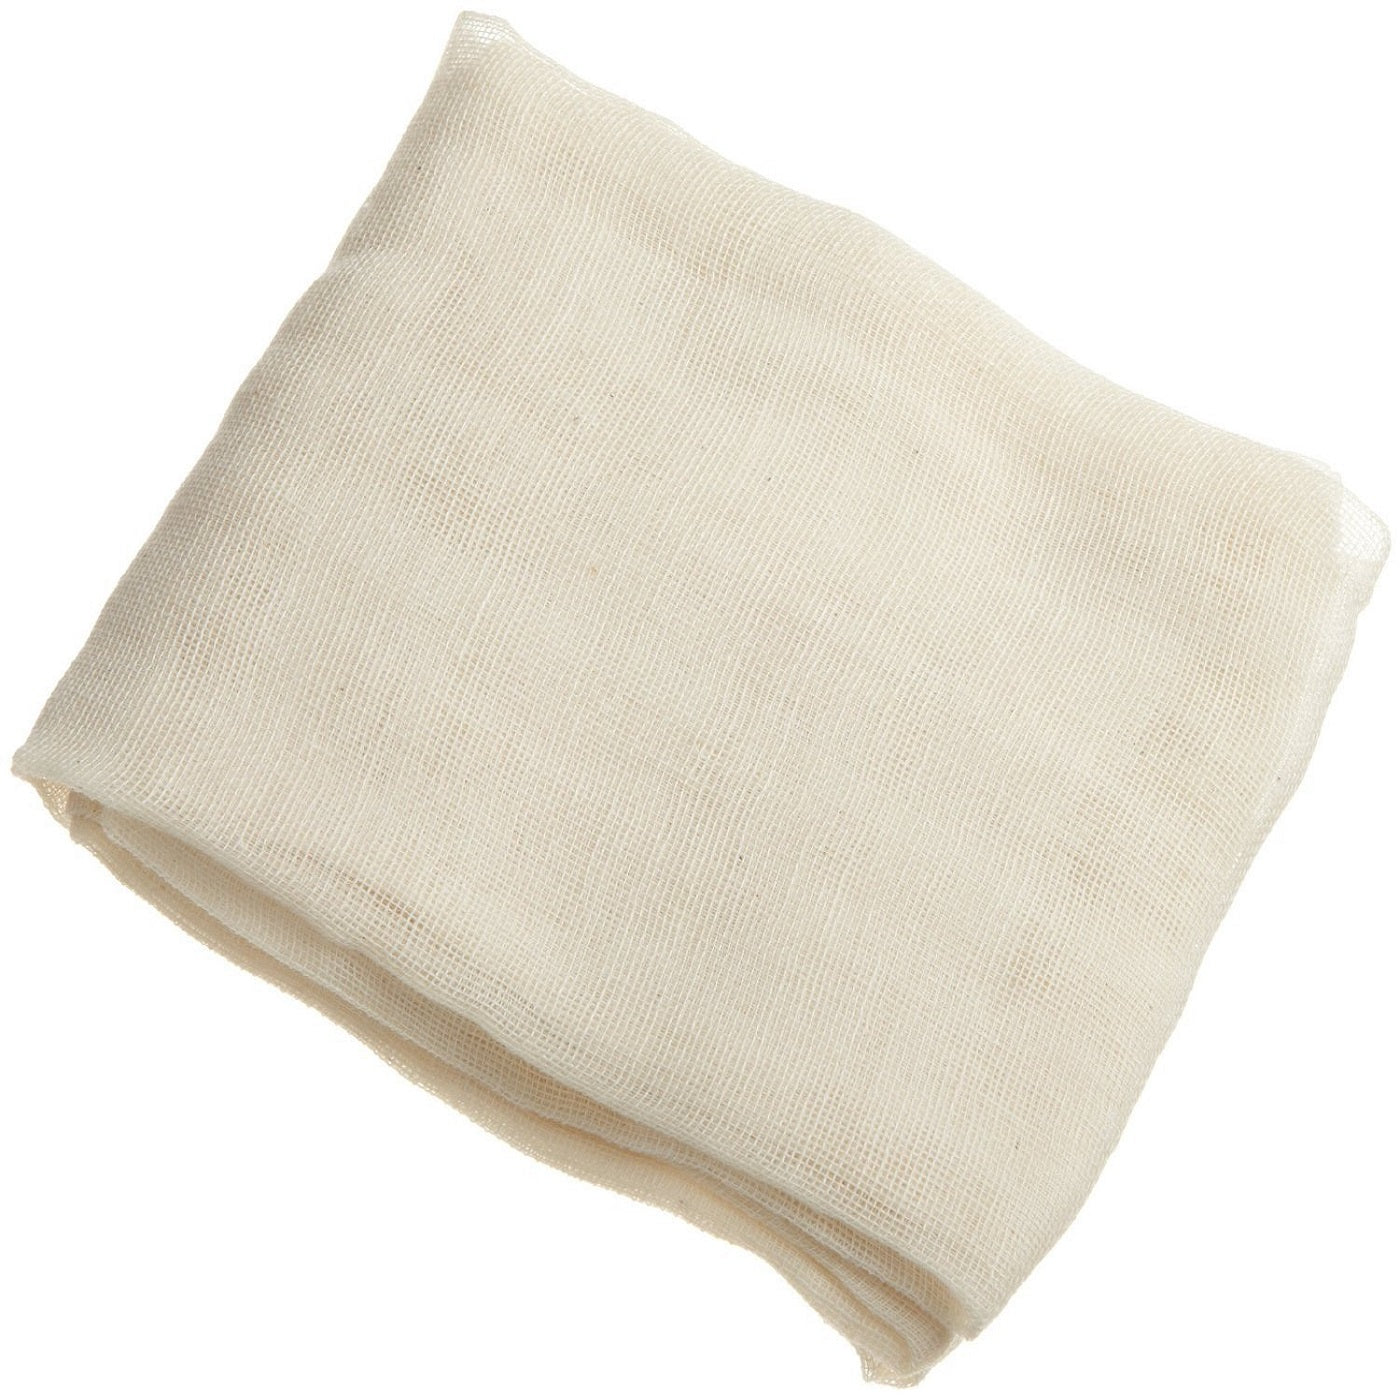 Cheesecloth - Yemoos Nourishing Cultures